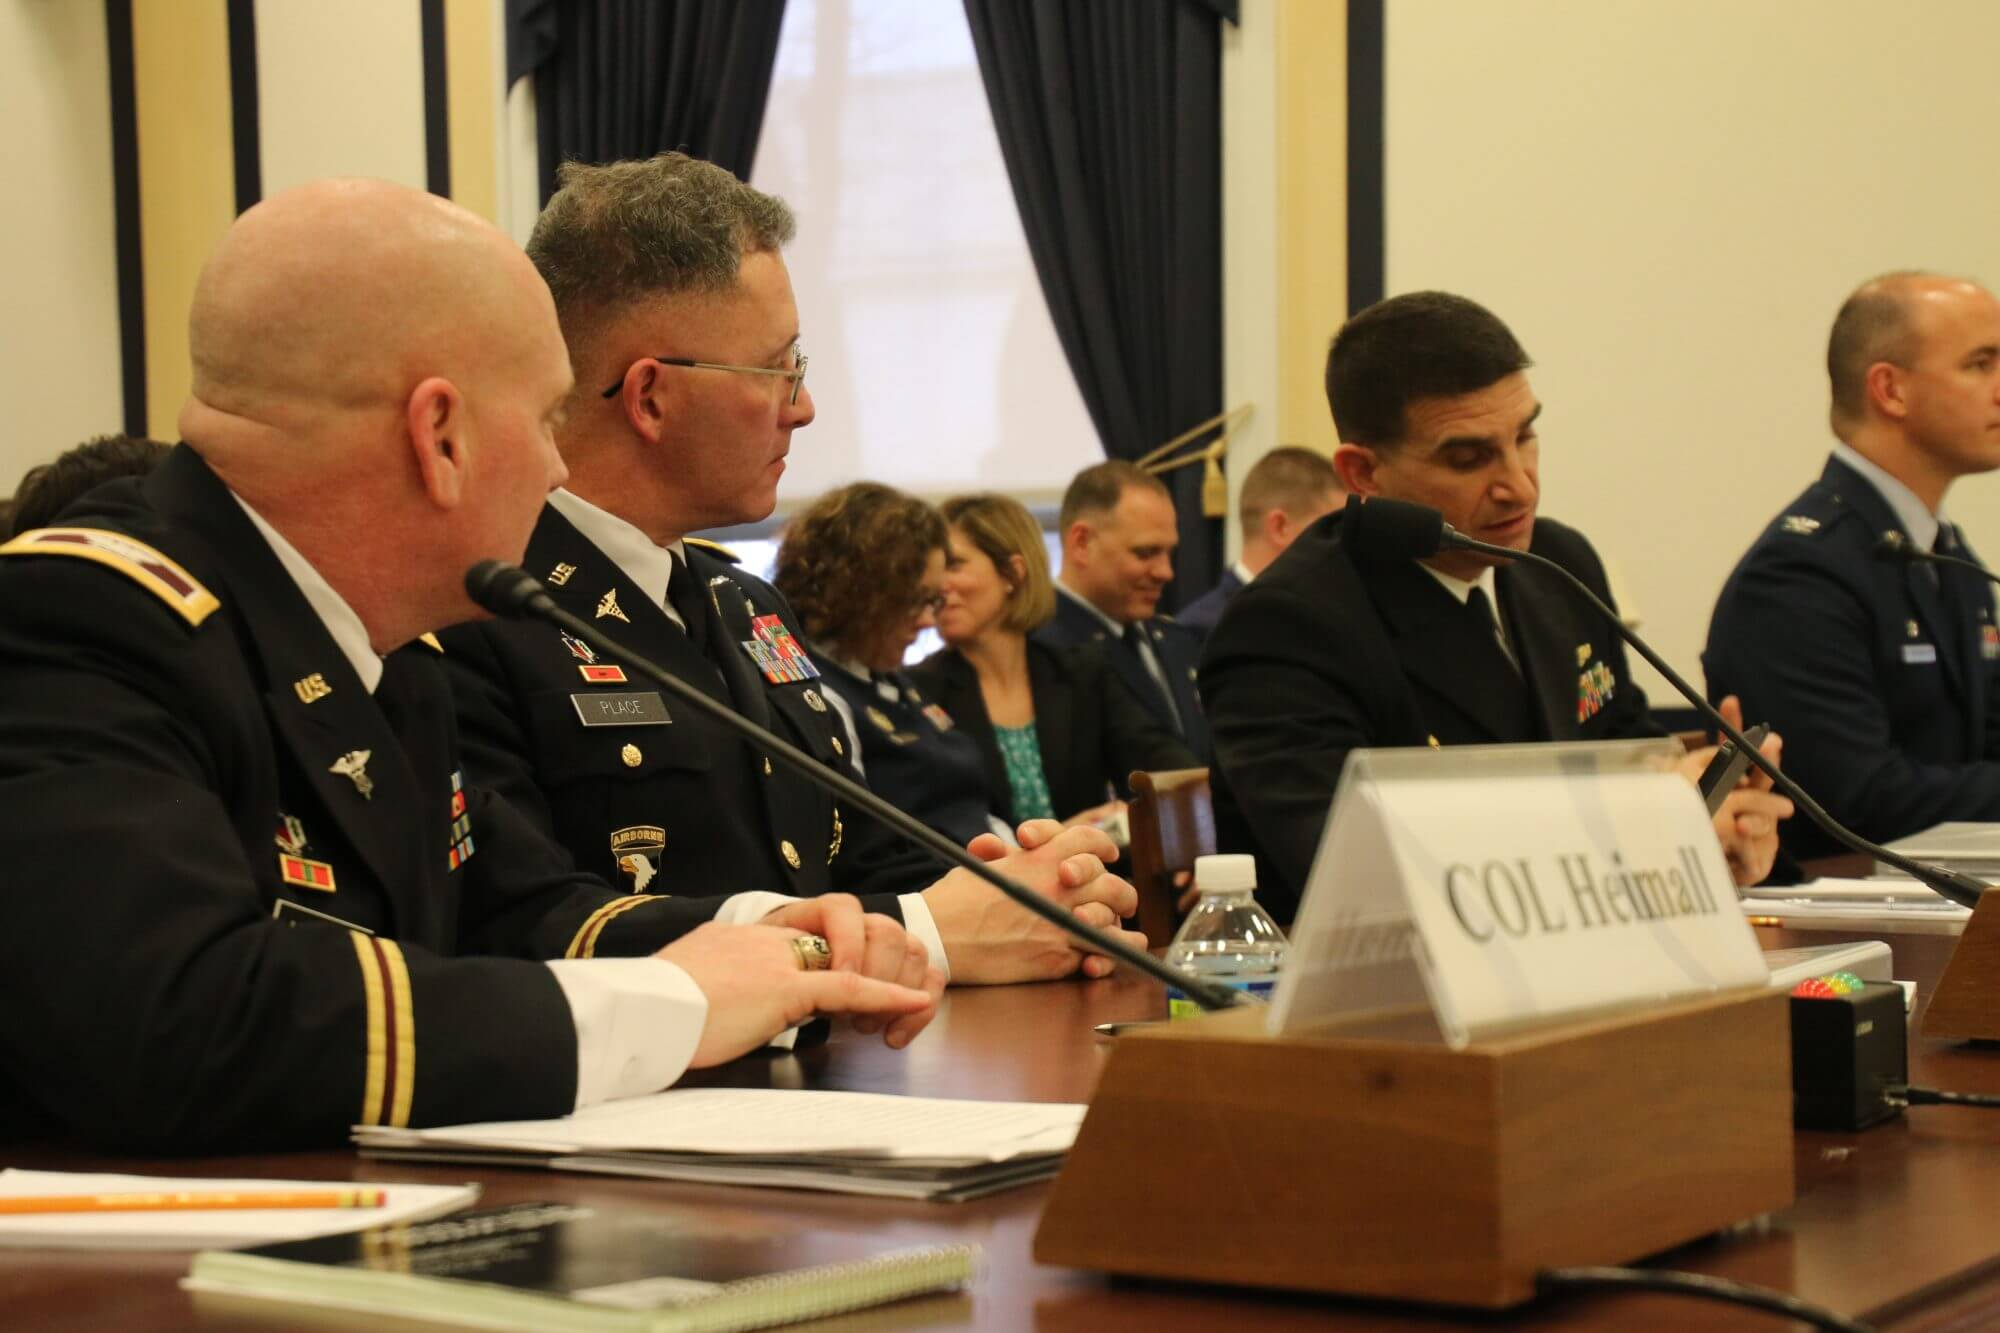 Armed Services panel: Military care about more than medical readiness